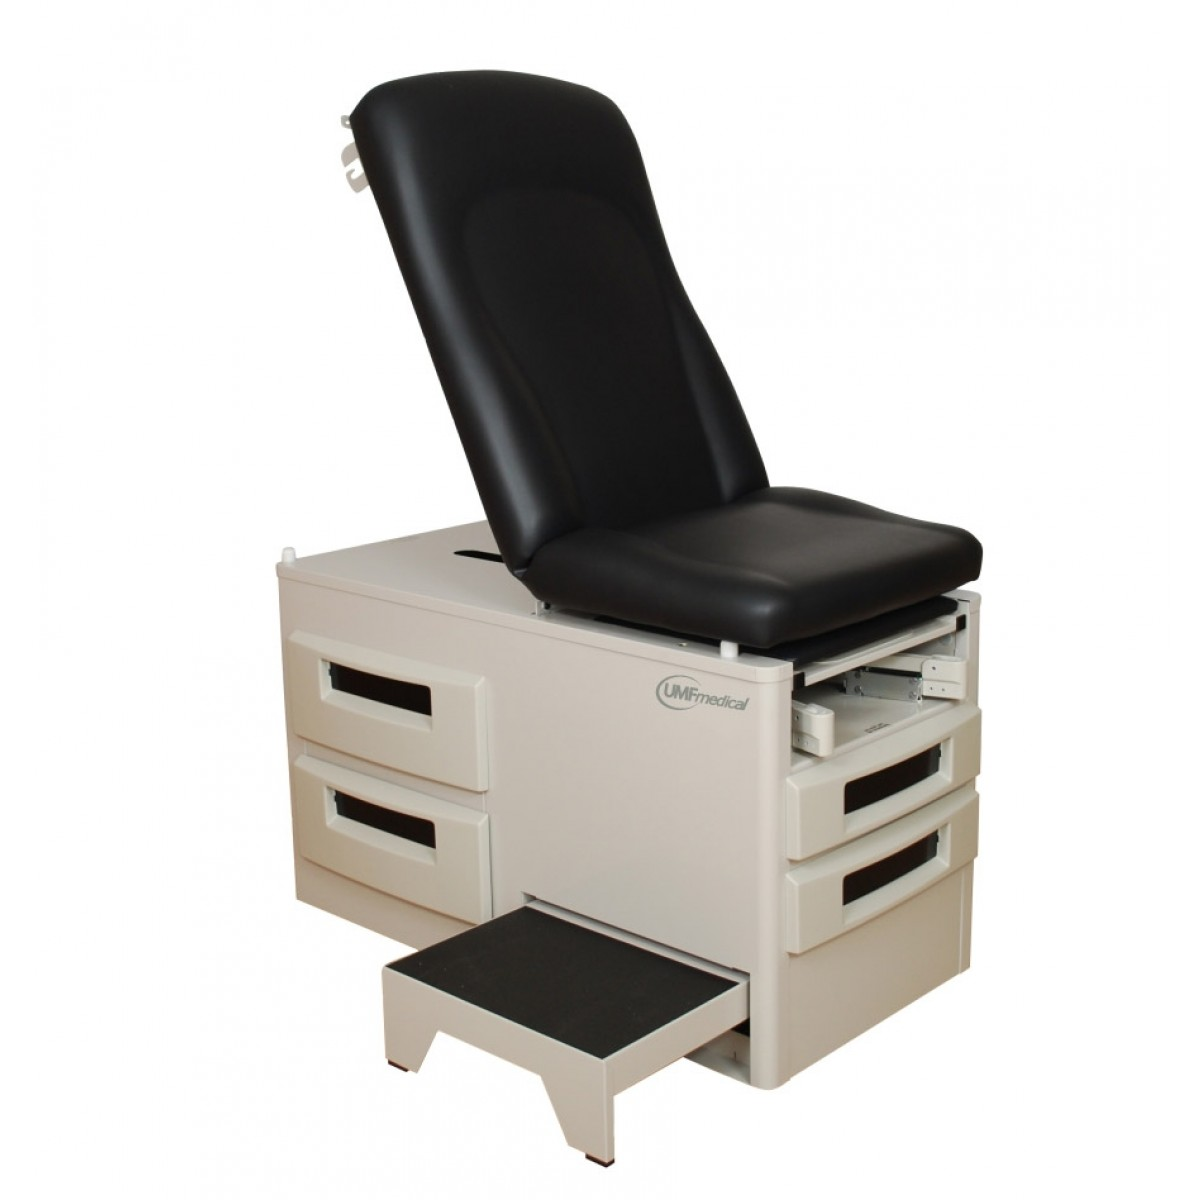 Examination Table Healthcare Exam Table Power Exam Chair